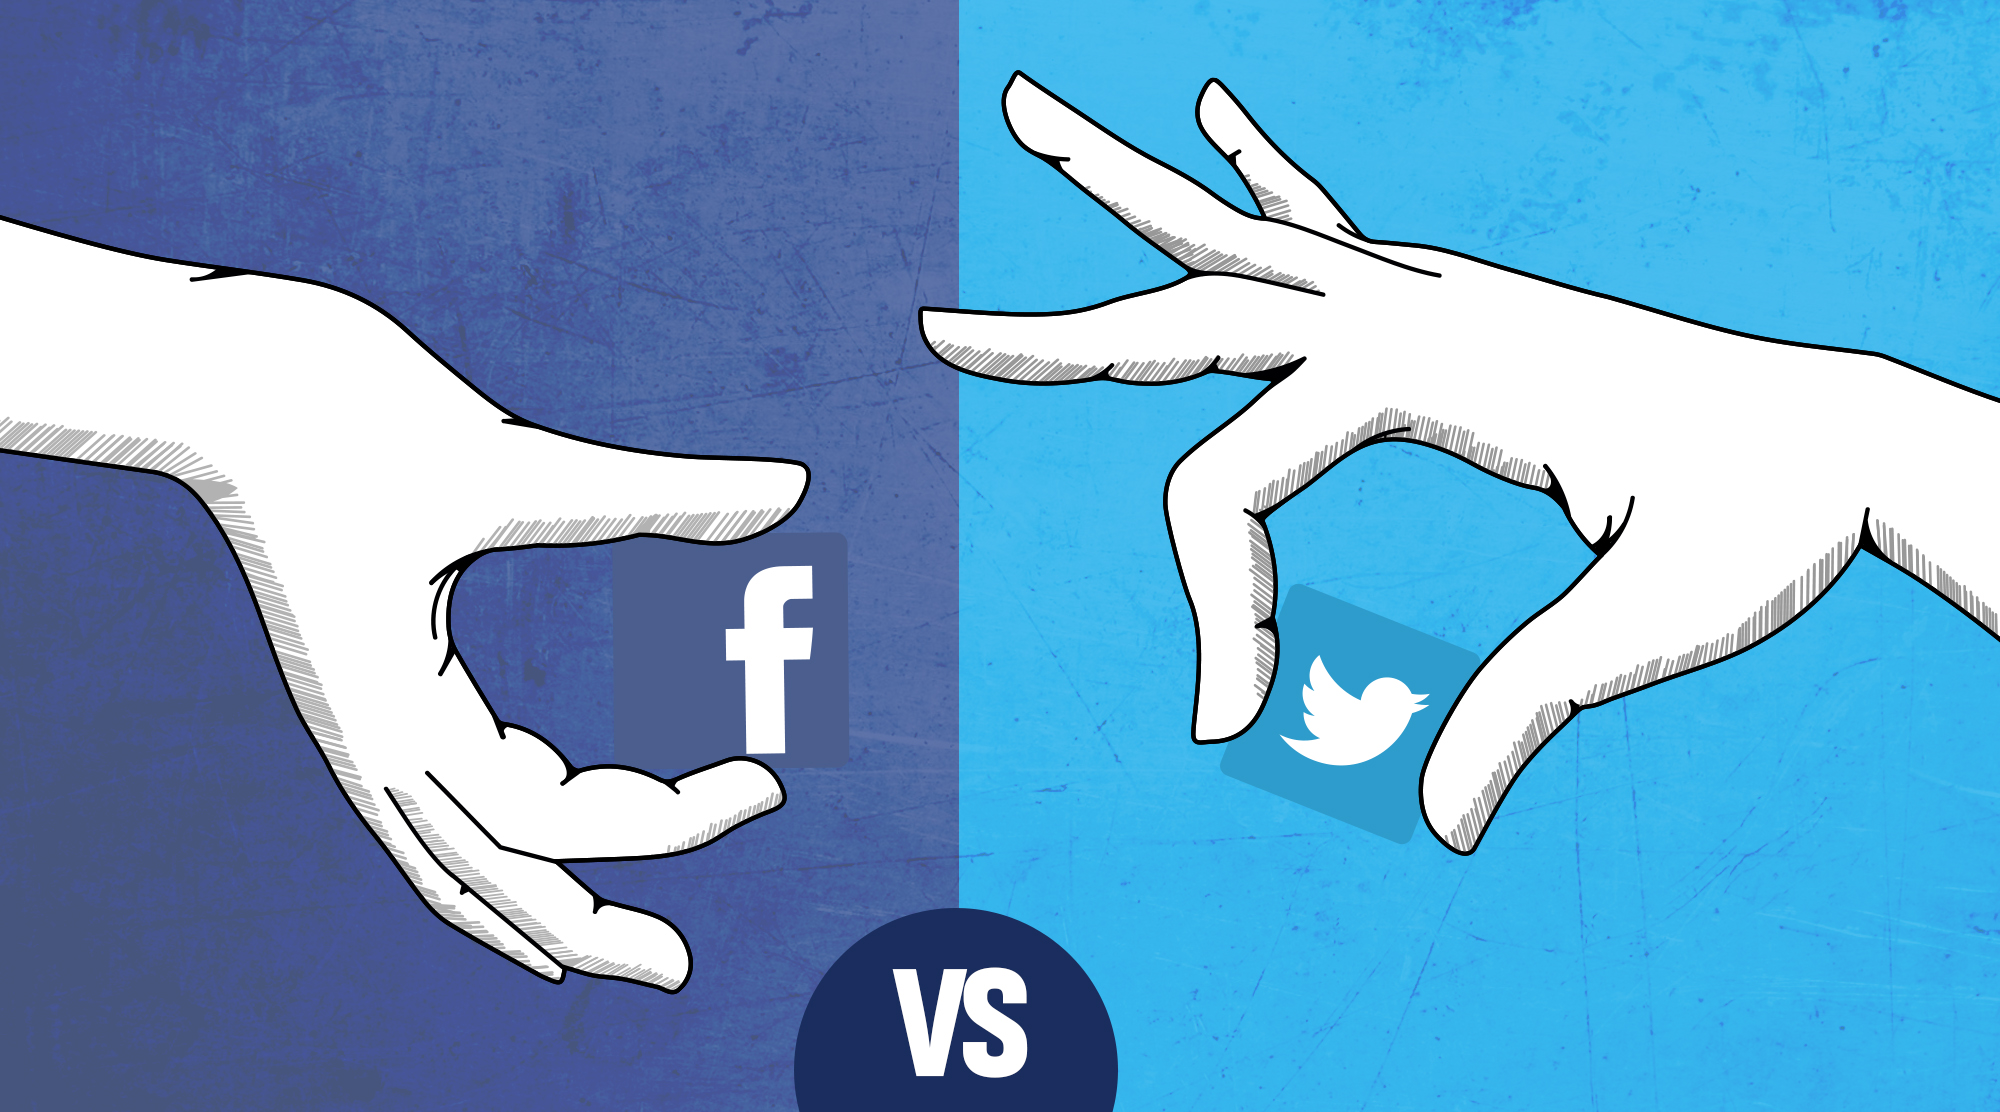 Why Twitter is (Epistemically) Better Than Facebook